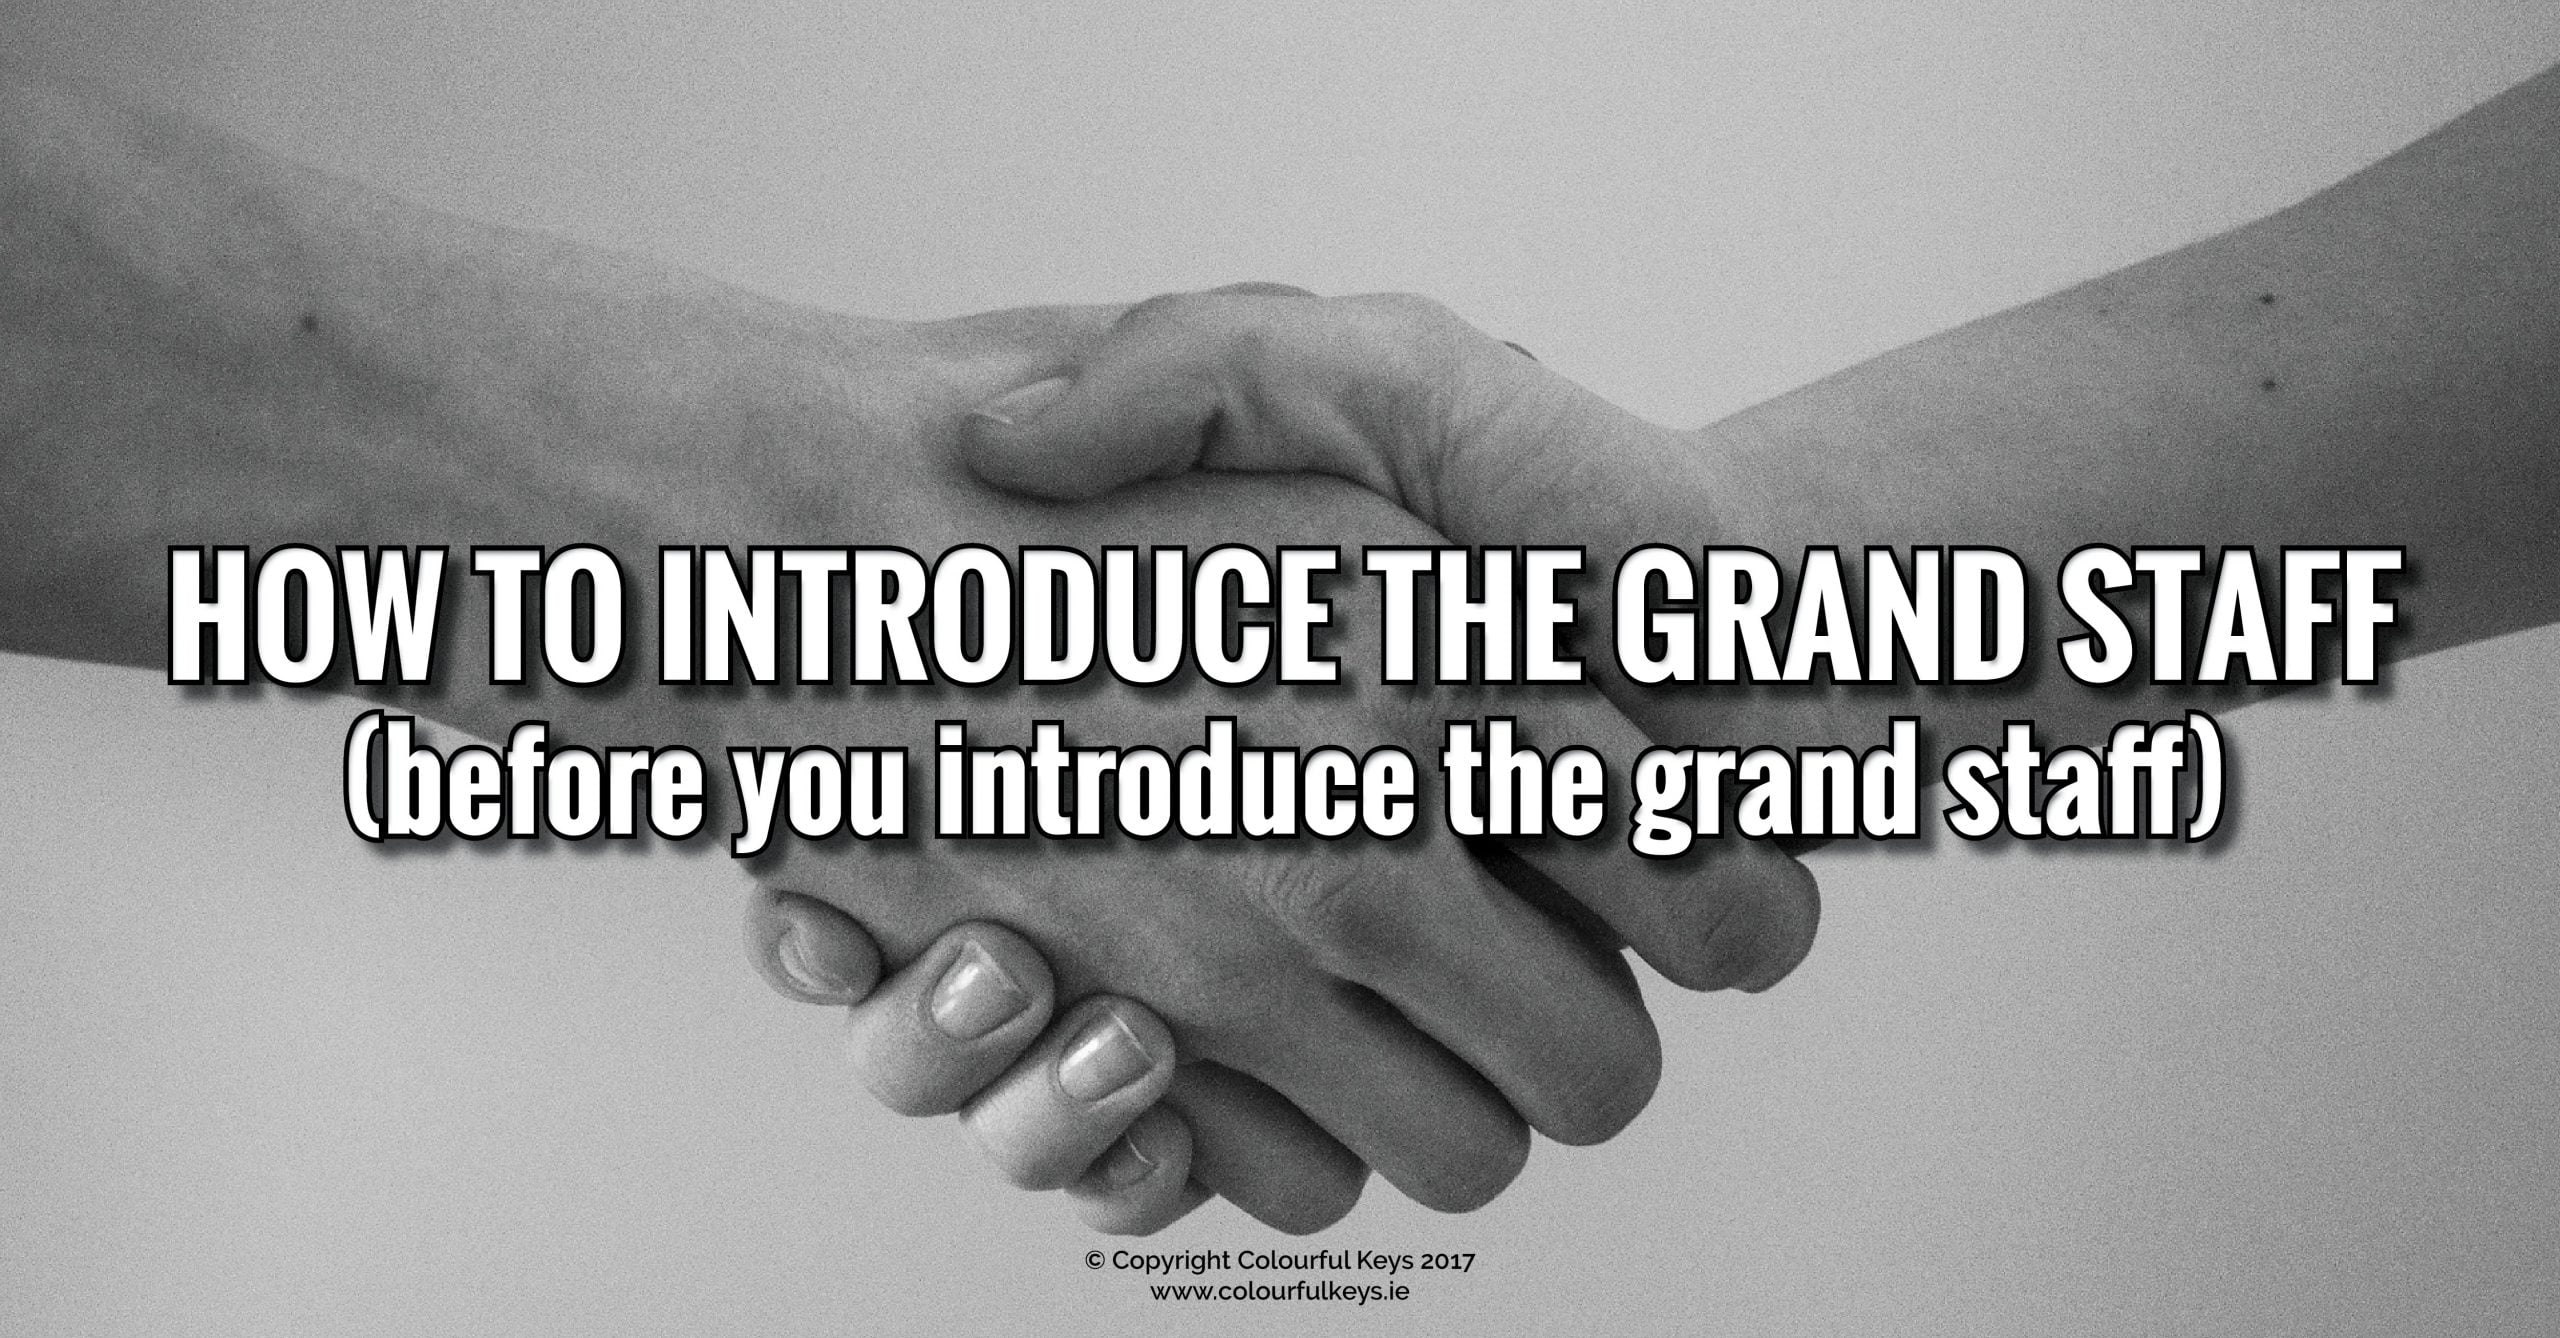 How to introduce the grand staff